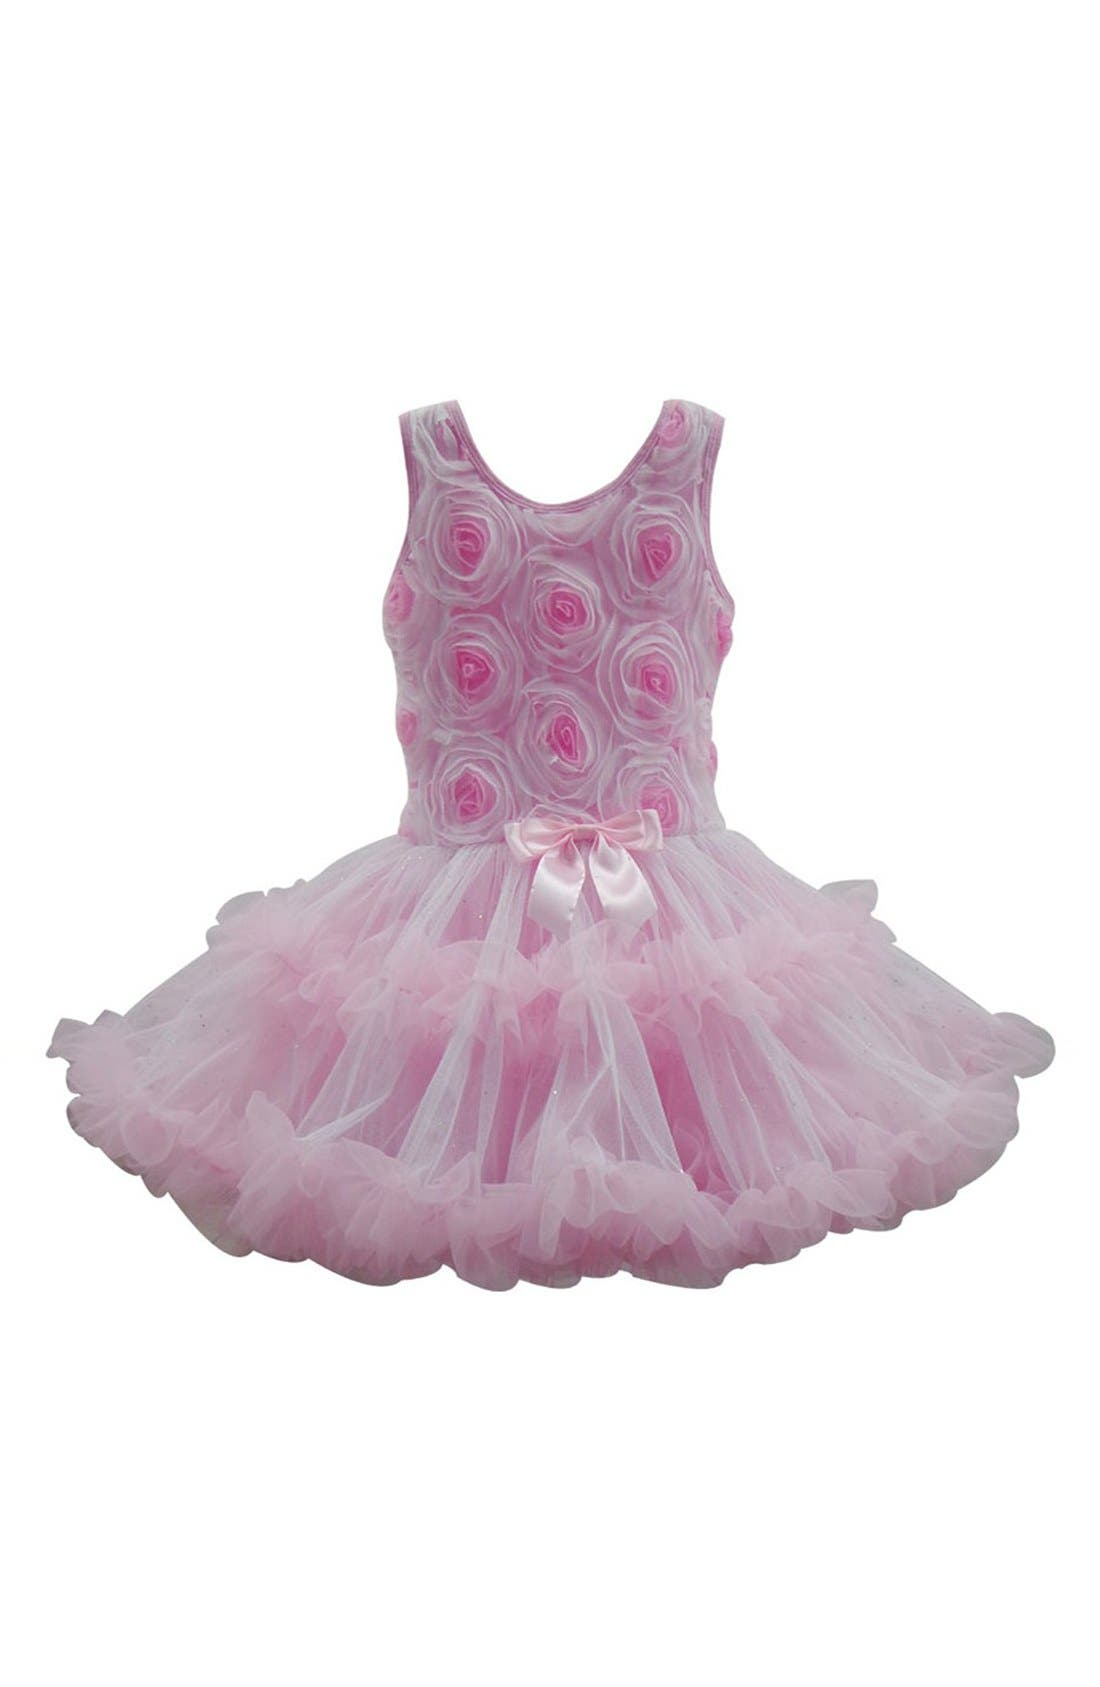 Ribbon Rosette Flower Petidress,                             Main thumbnail 1, color,                             Pink